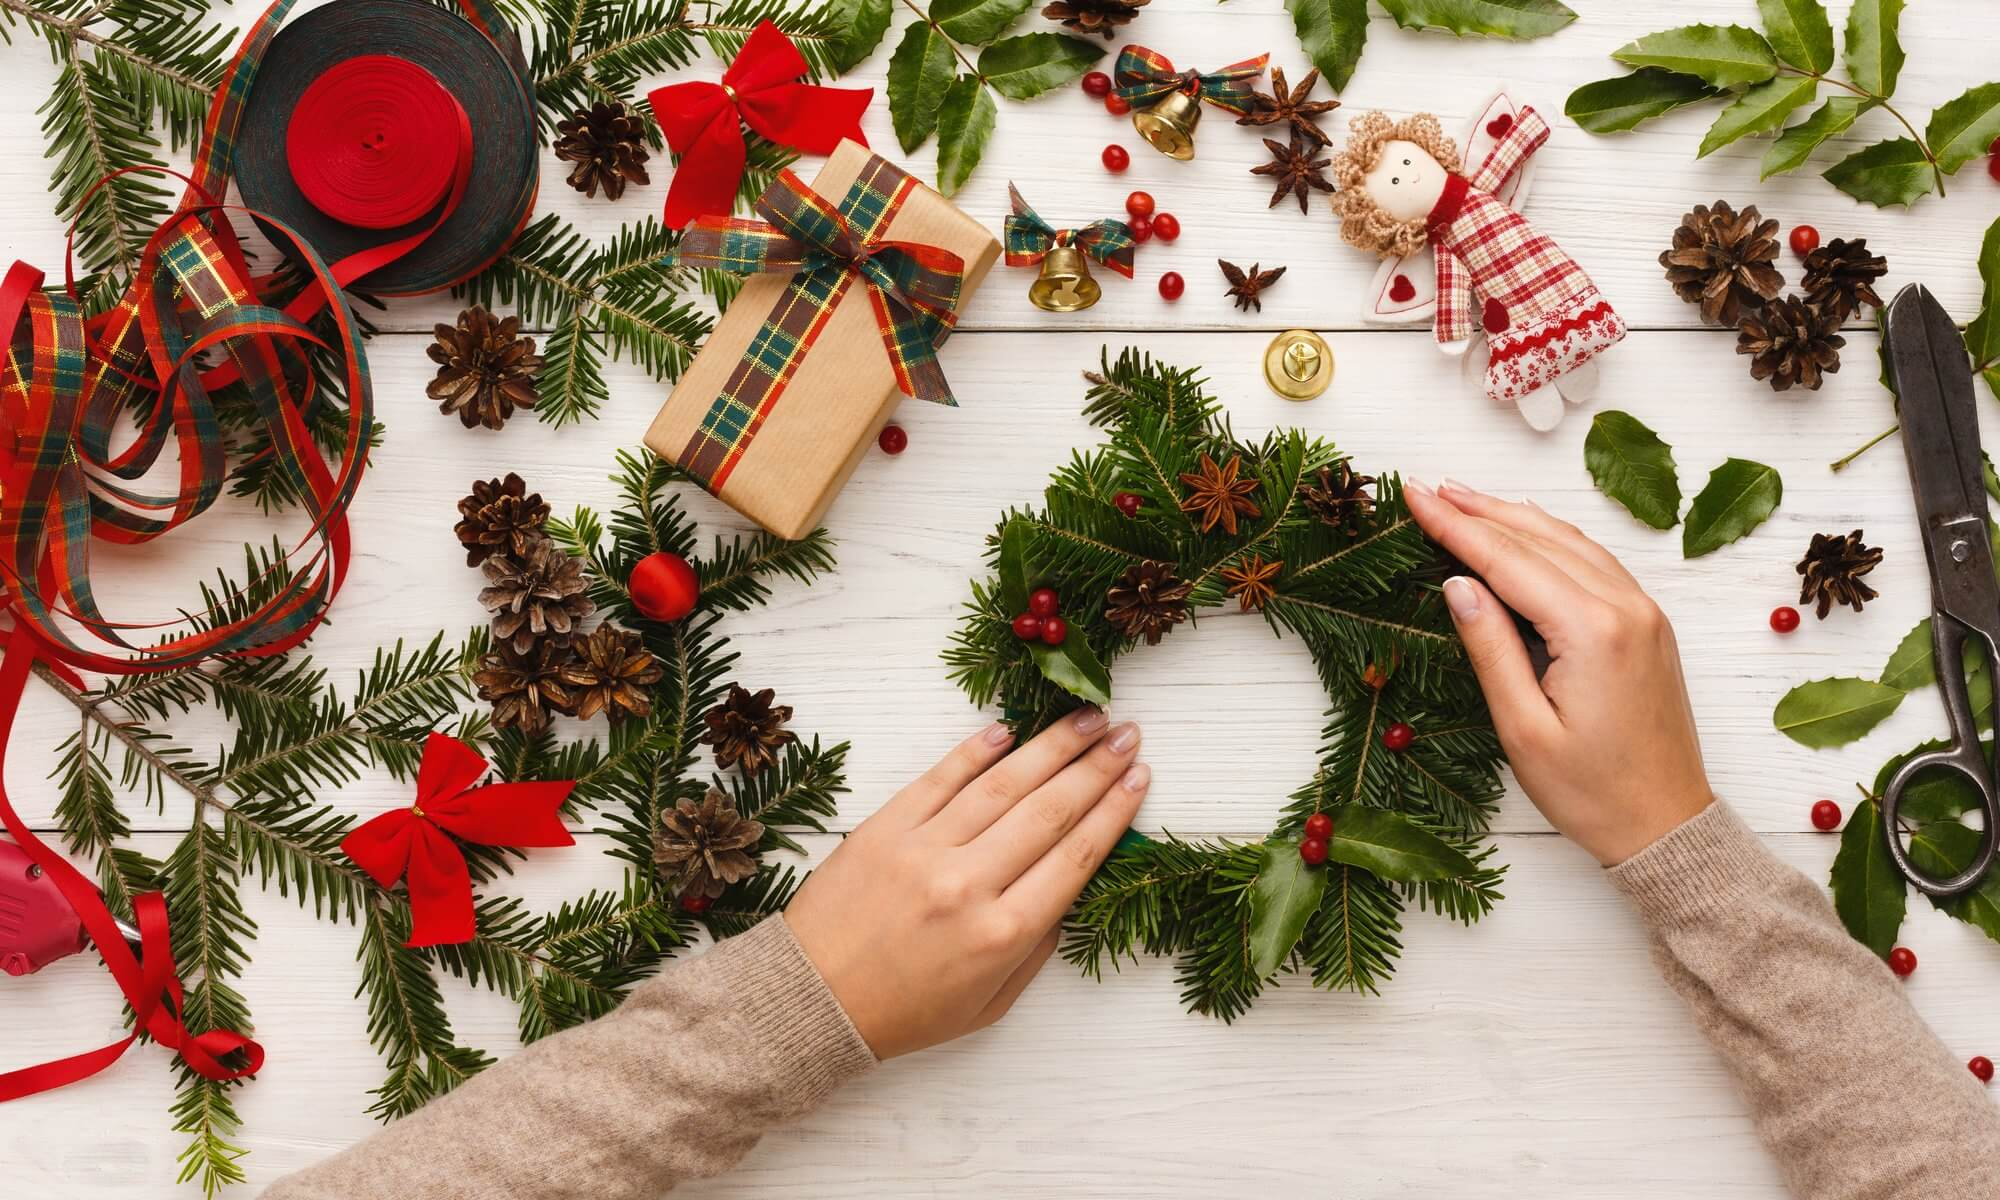 Ways to reduce waste at Christmas